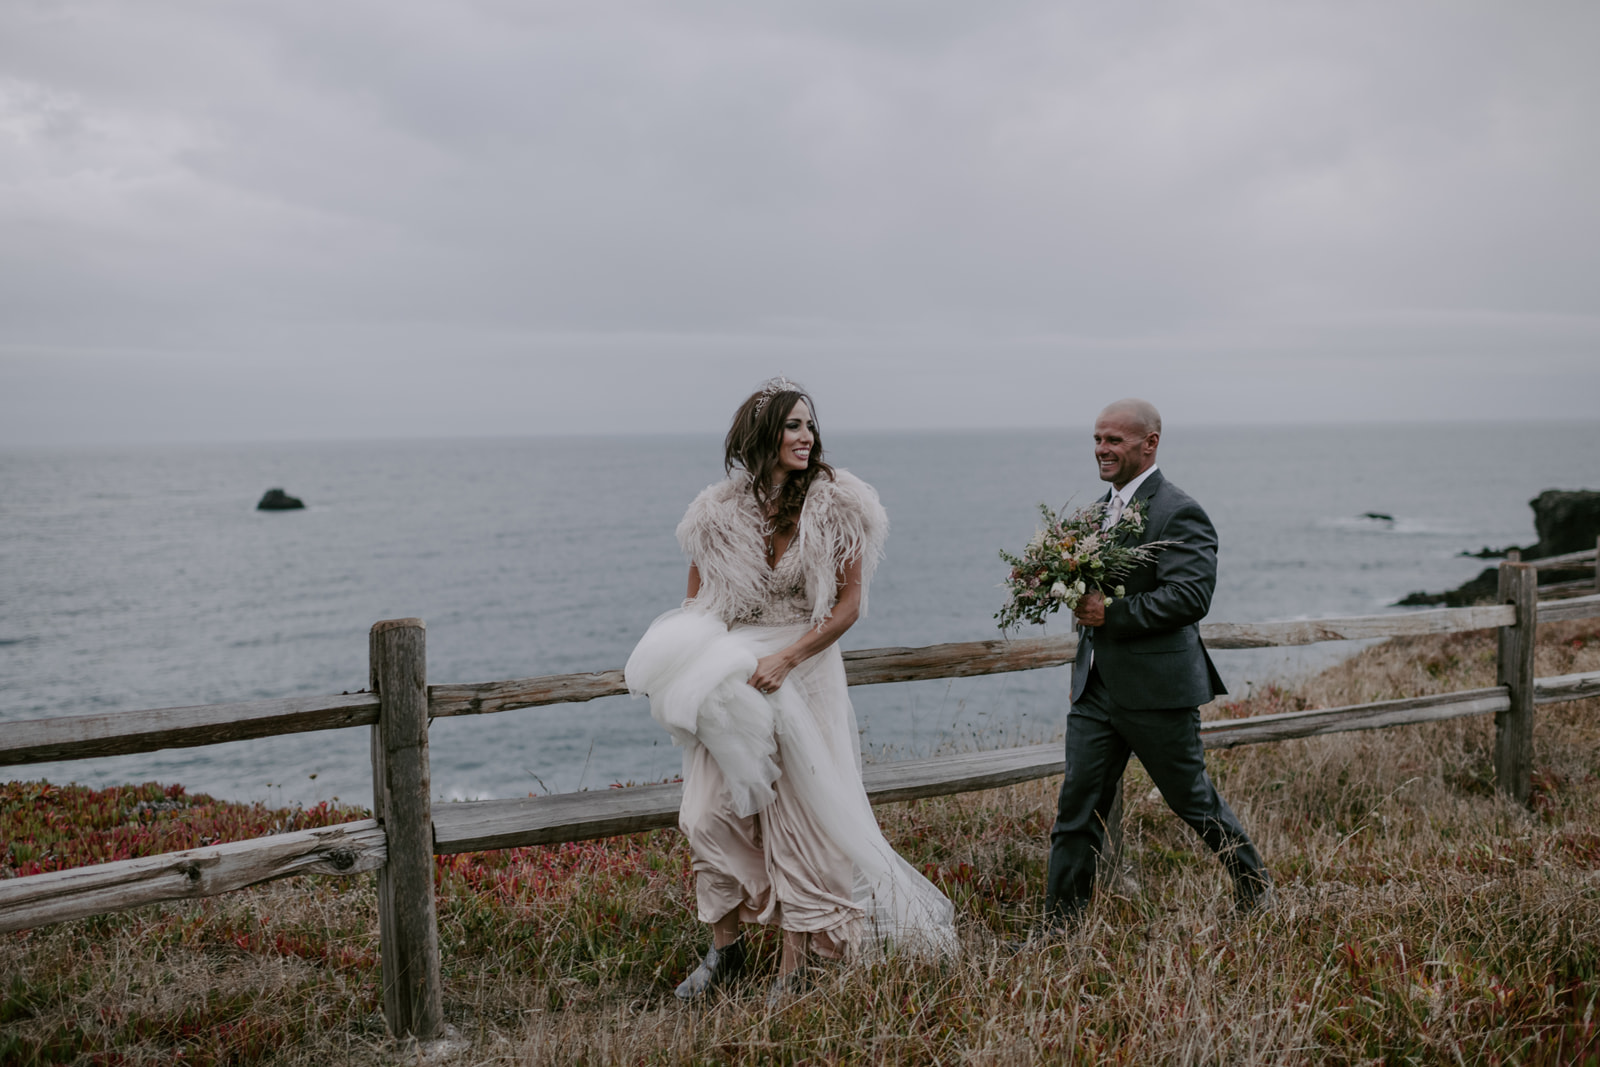 Earthy fine art wedding flowers in Northern California by Venn Floral photographed by Kristen Marie Parker.